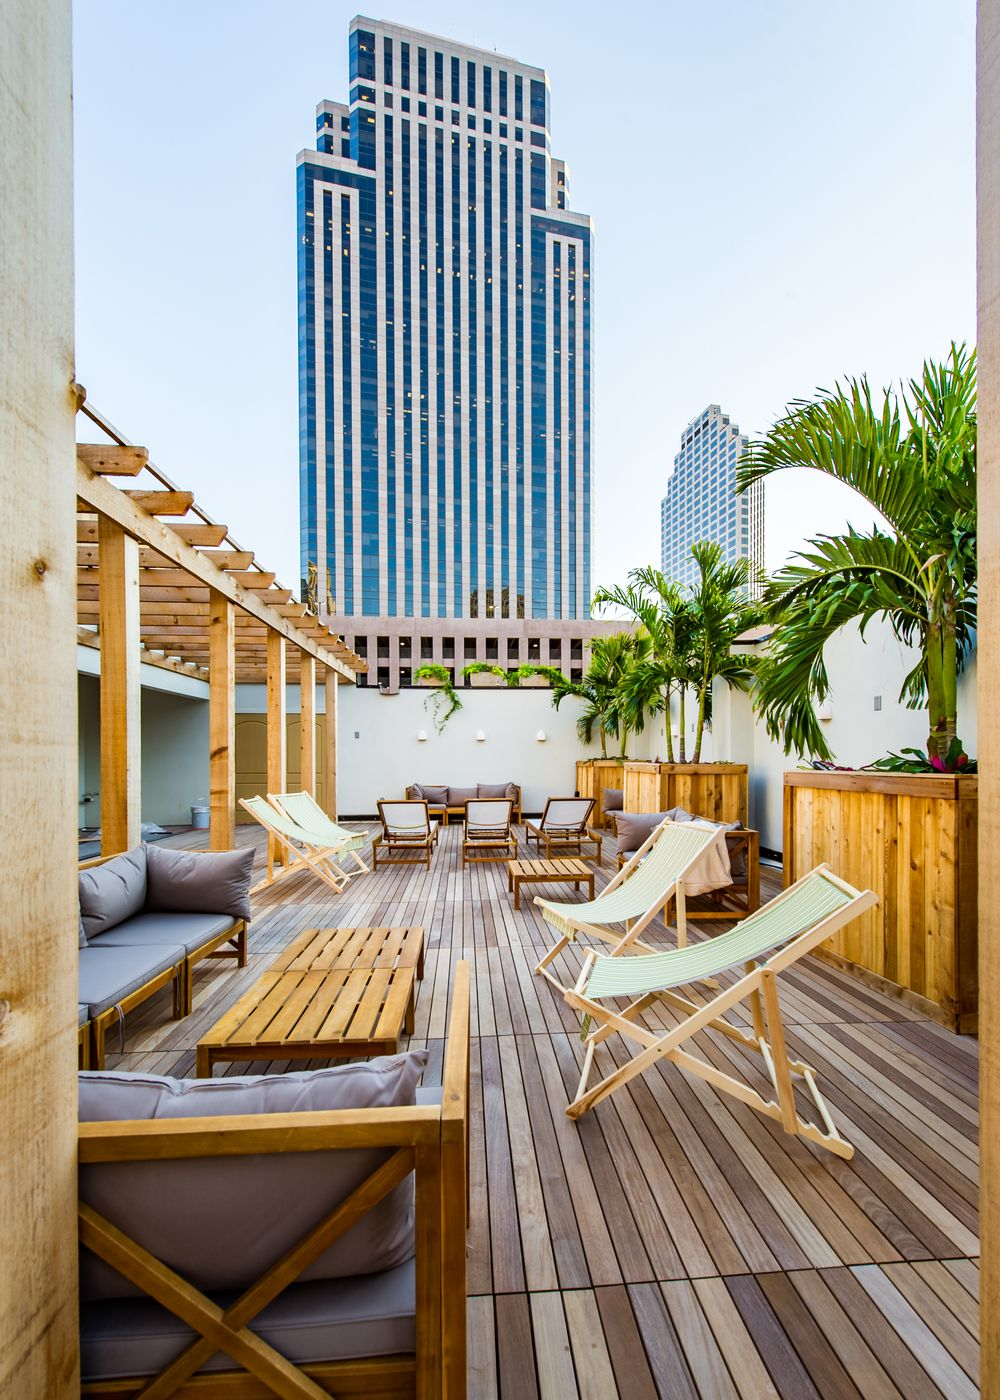 bachelorette cities nola rooftop view lounge chairs